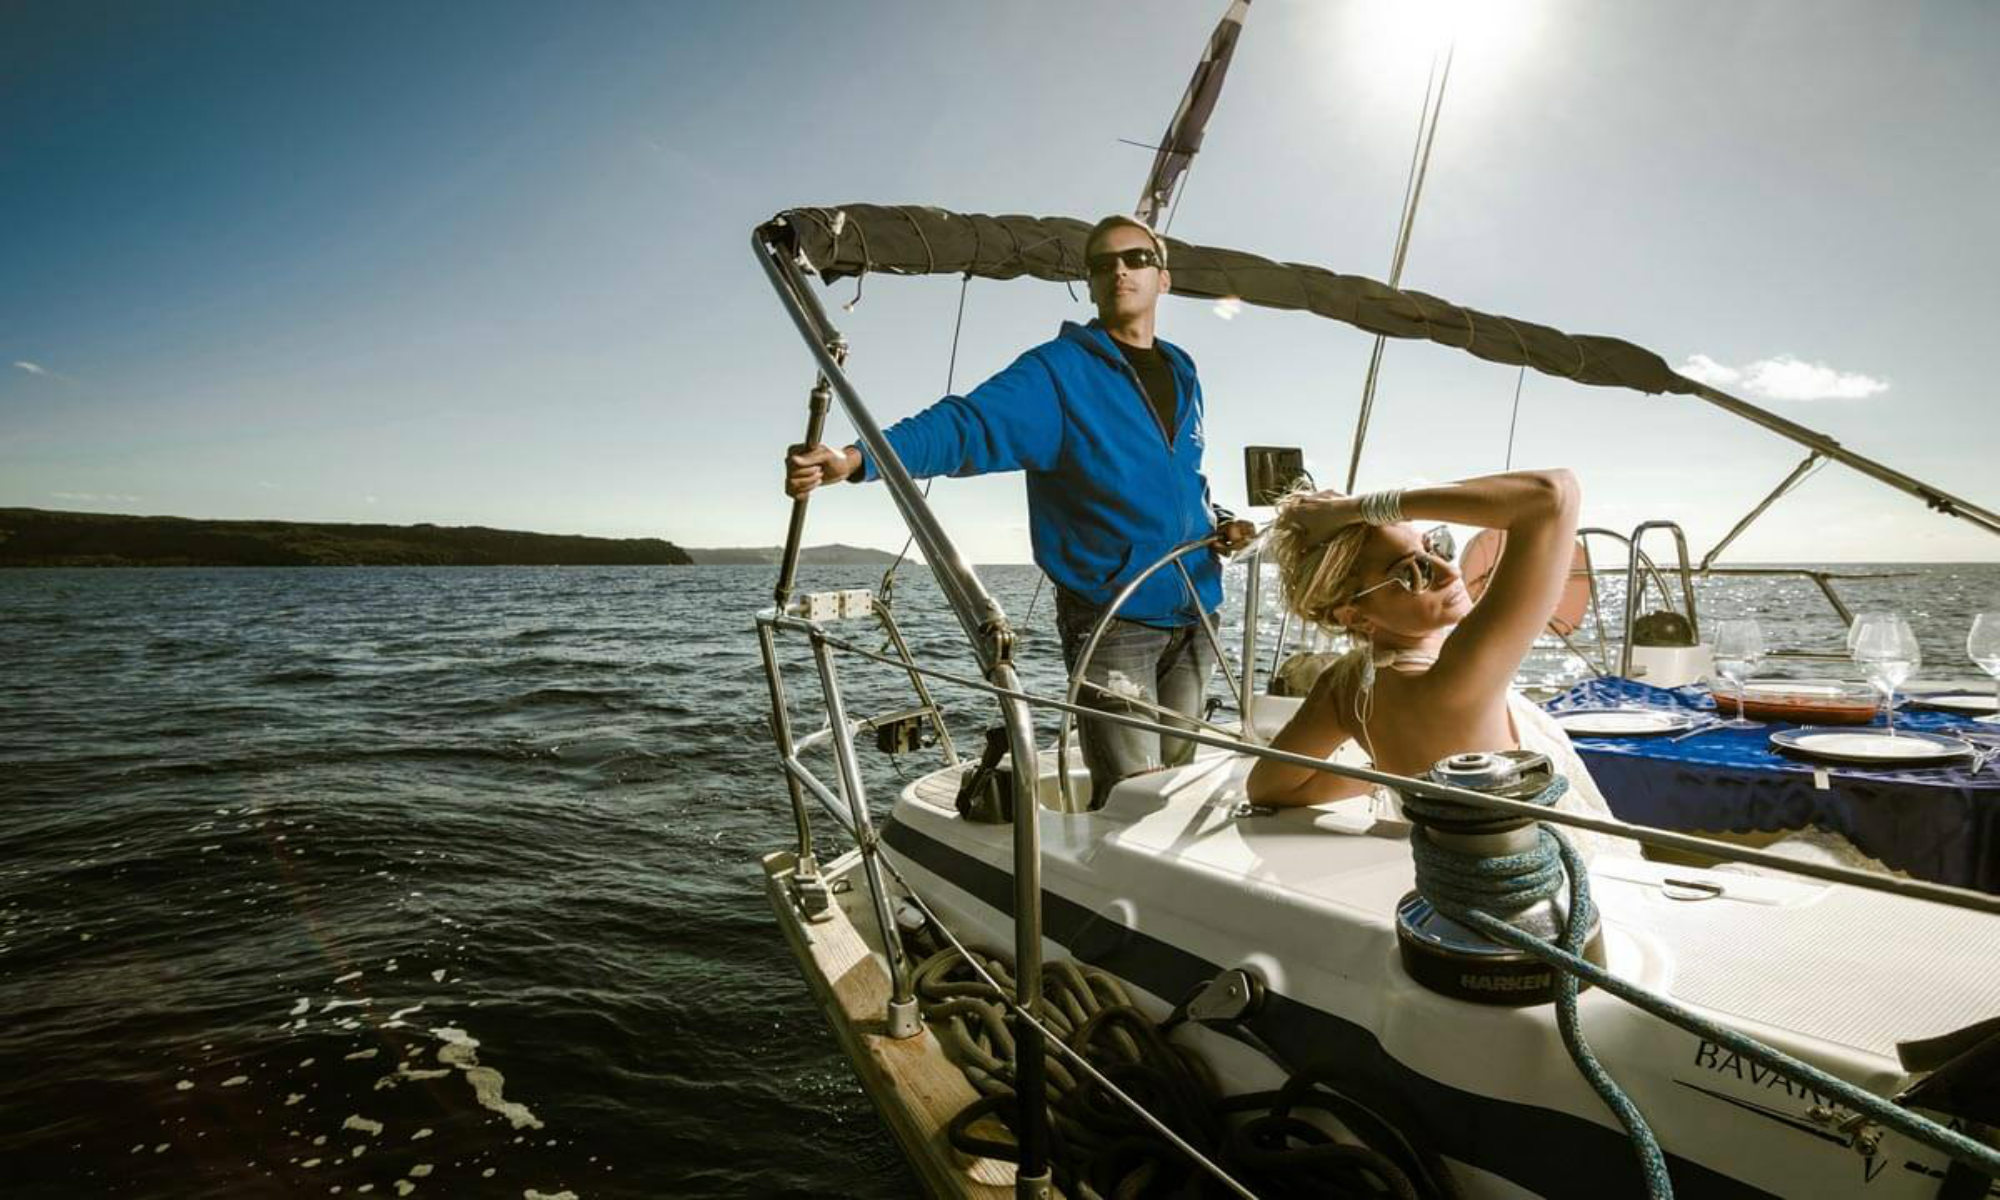 The captain and his female guest are enjoying a boat tour around the island of Santorini.